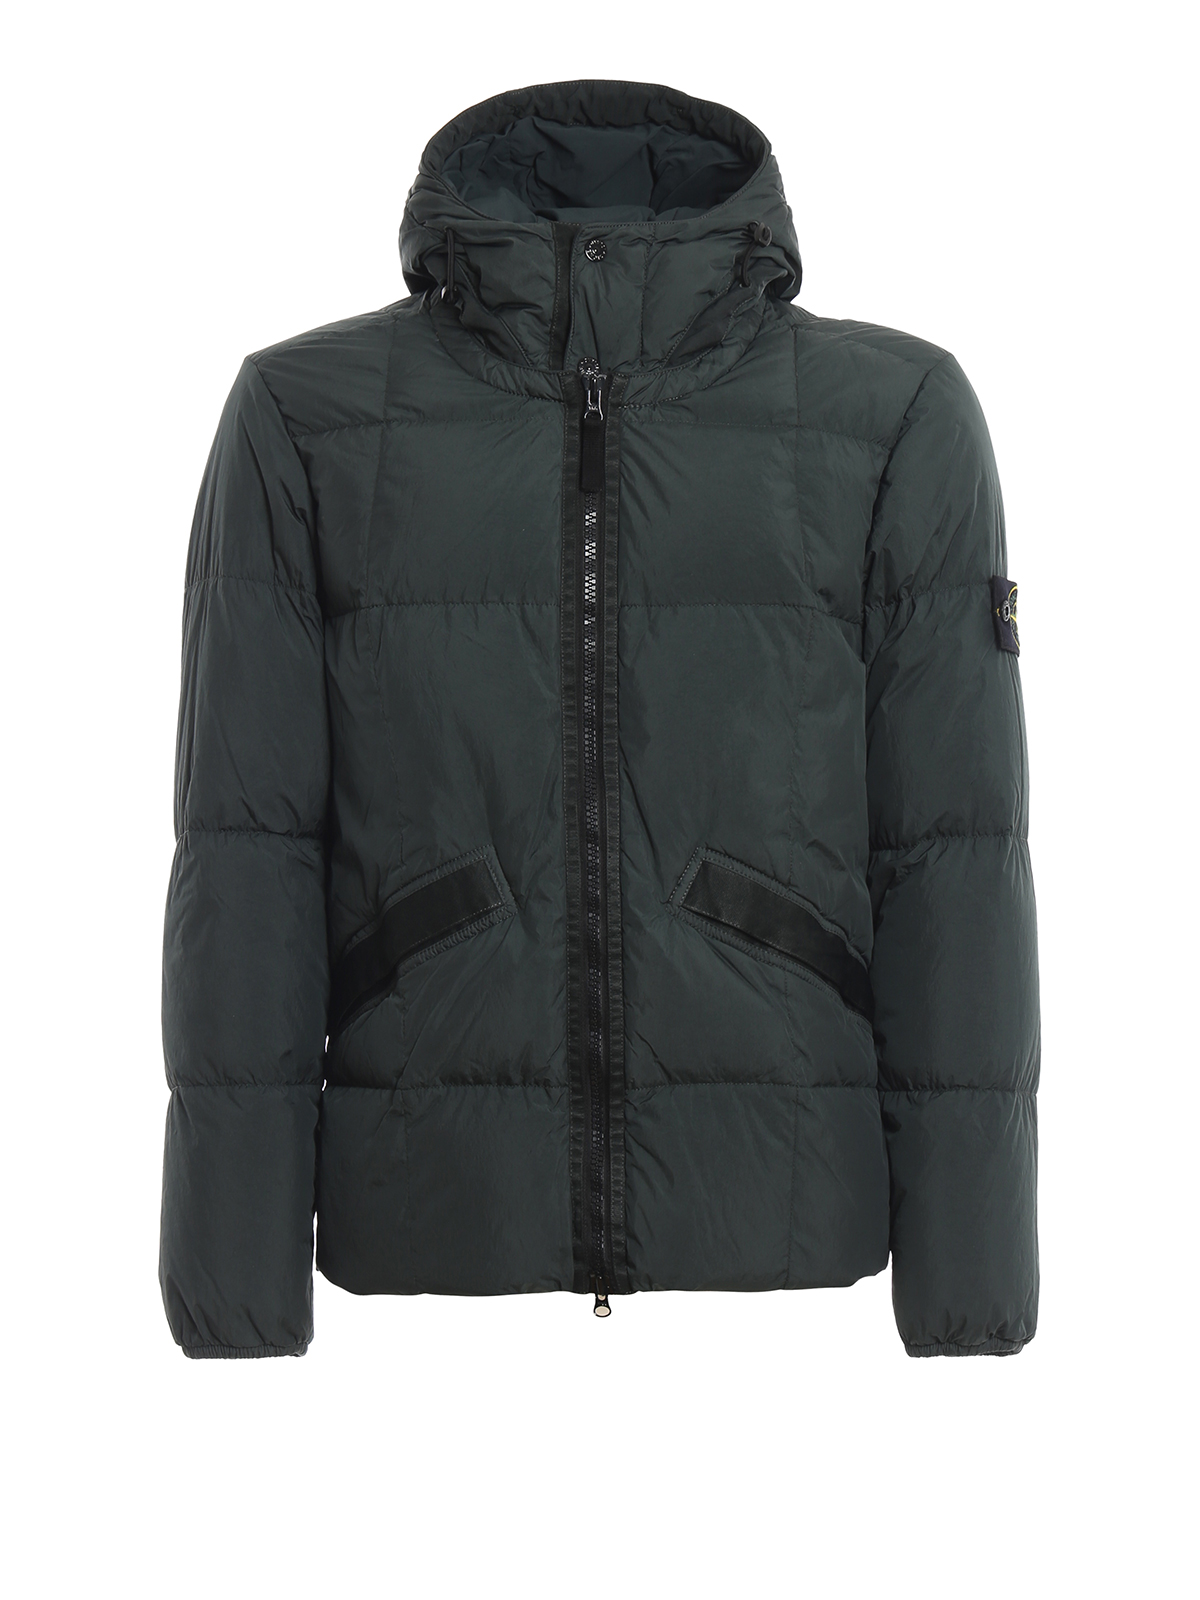 804a6c717 Crinkle Reps Nylon Garment Dyed Puffer Jacket in Dark Green